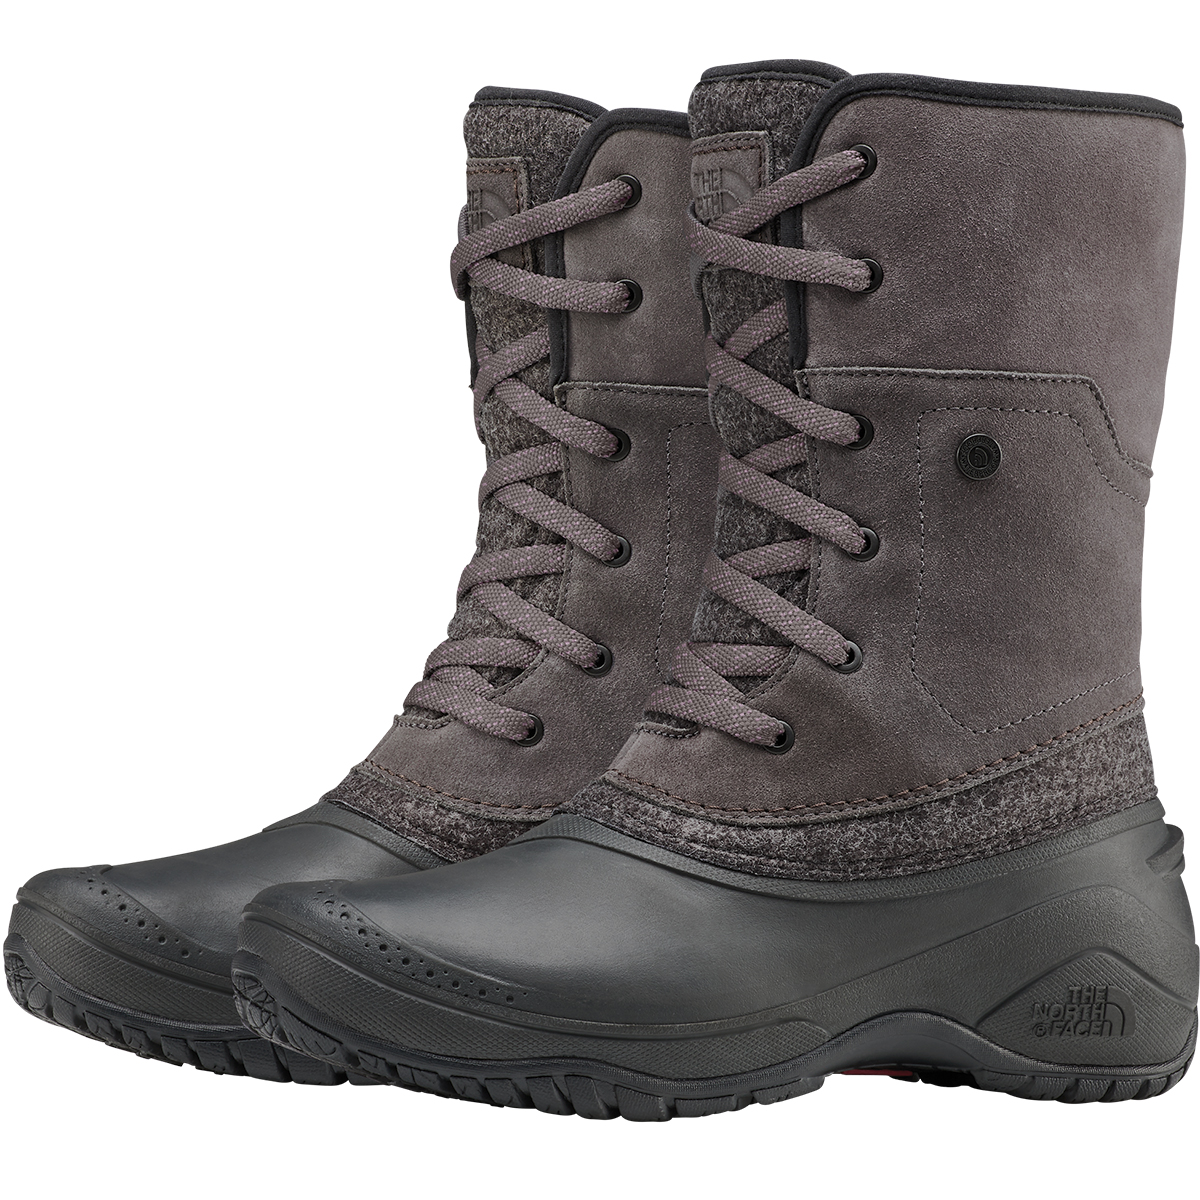 The North Face Women's Shellista 2 Roll-Down Boots - Black, 10